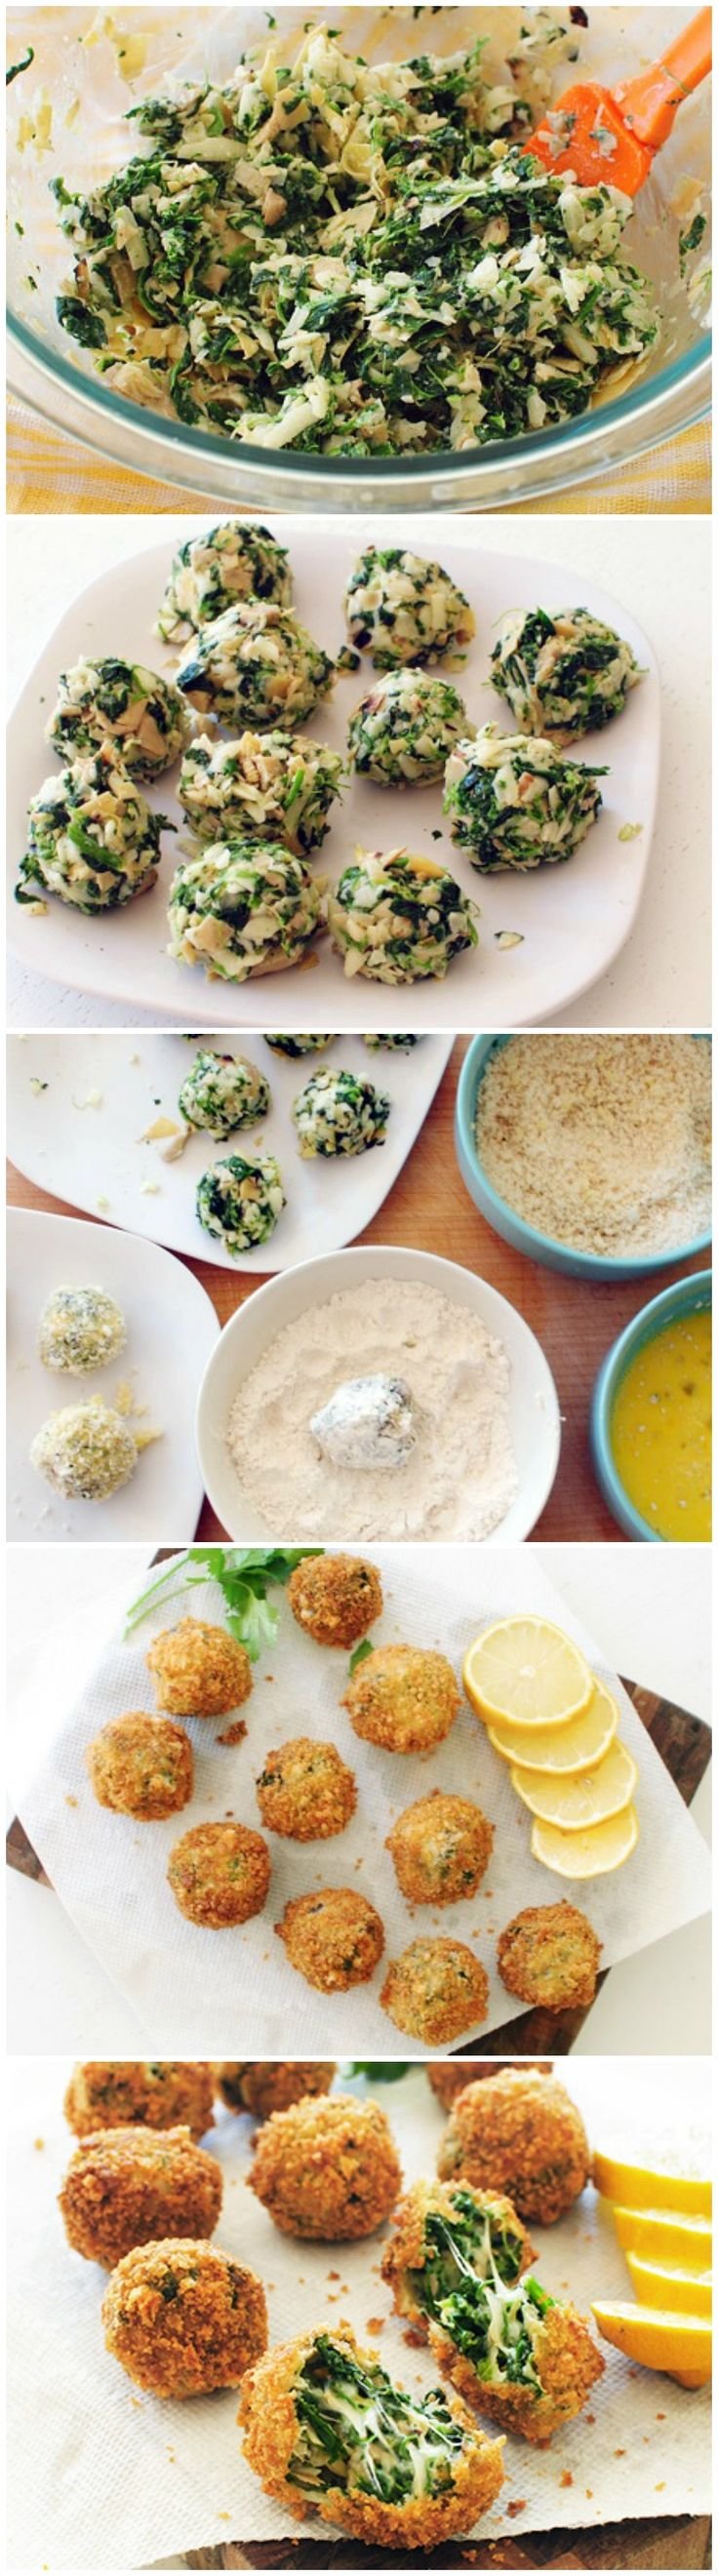 Fried Spinach & Artichoke Dip Balls